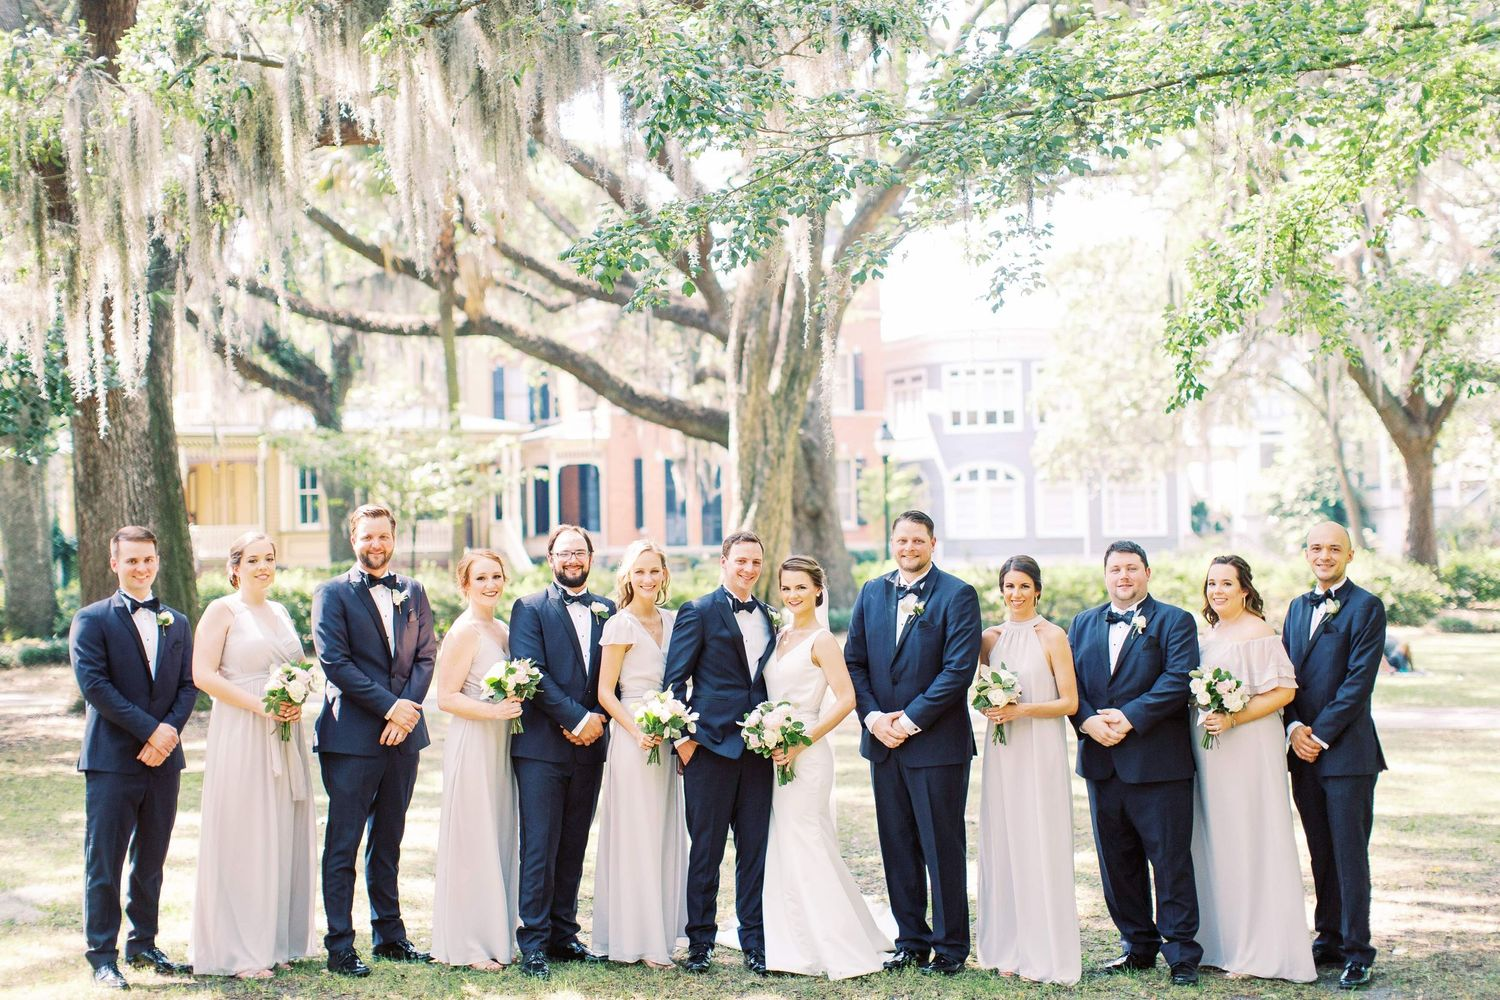 wedding party poses in forsyth park found in downtown savannah ga